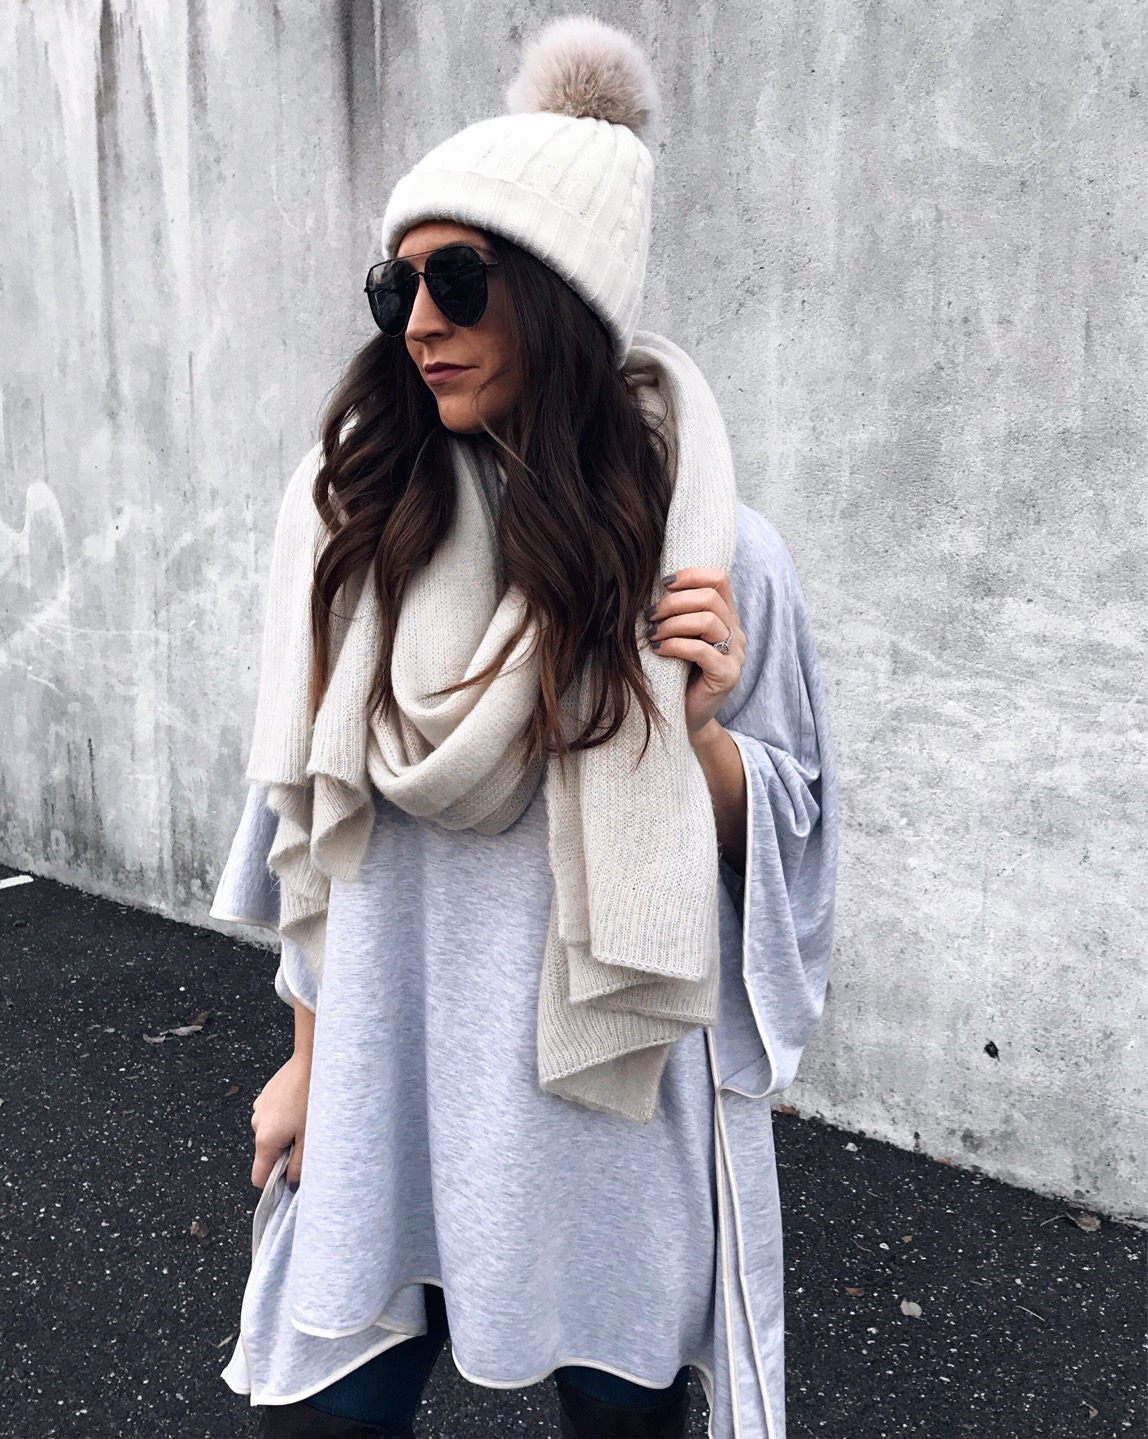 Weekend Sales & Instagram Round Up | Pine Barren Beauty | winter fashion, winter outfit idea, winter essentials, cozy outfit idea, free people scarf, pom beanie, lou & grey poncho